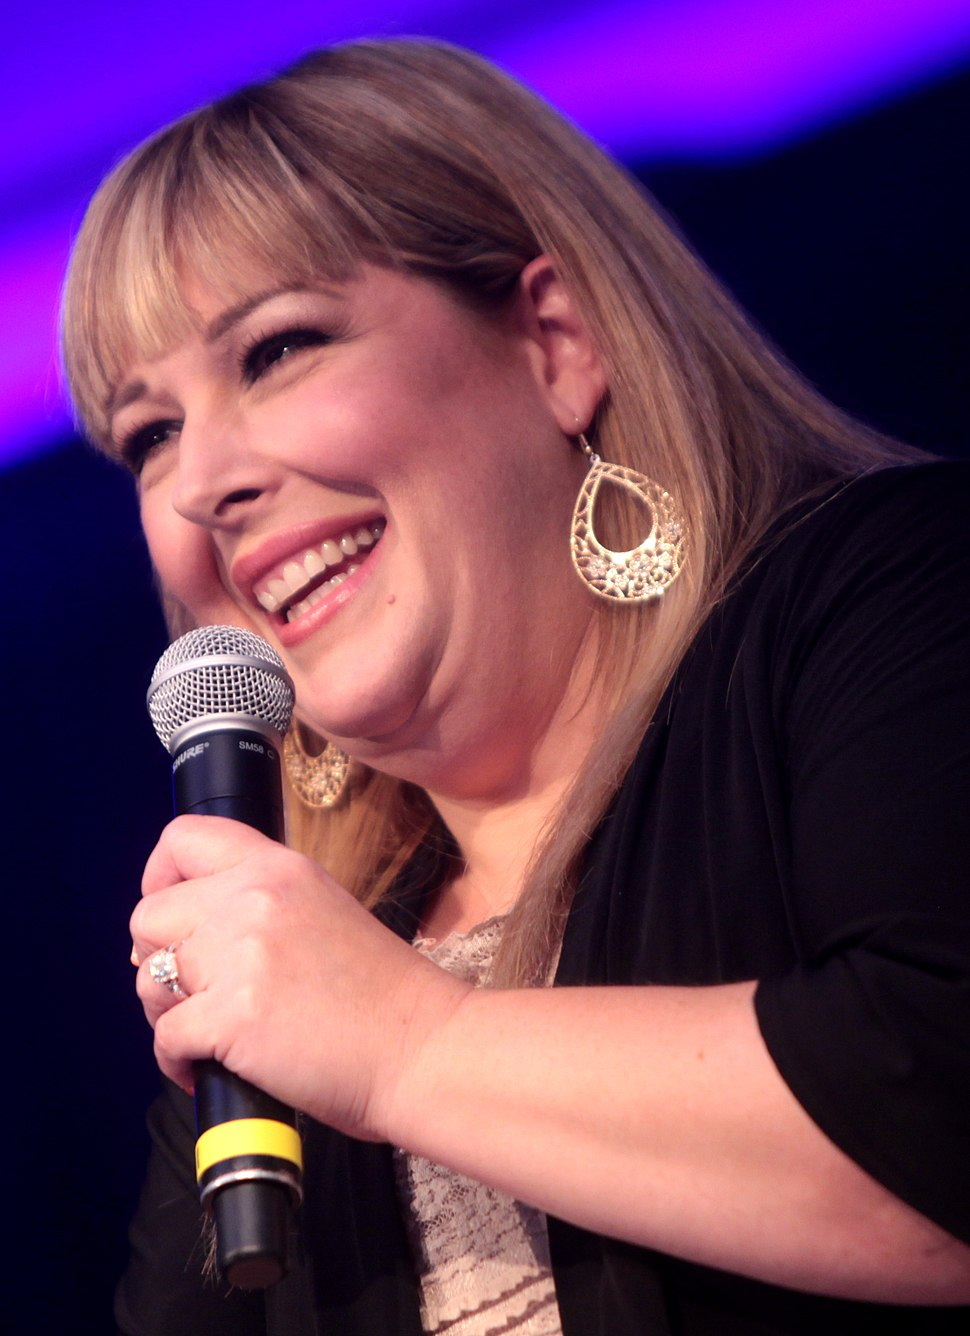 Carnie Wilson Oct 2014 2 (cropped)